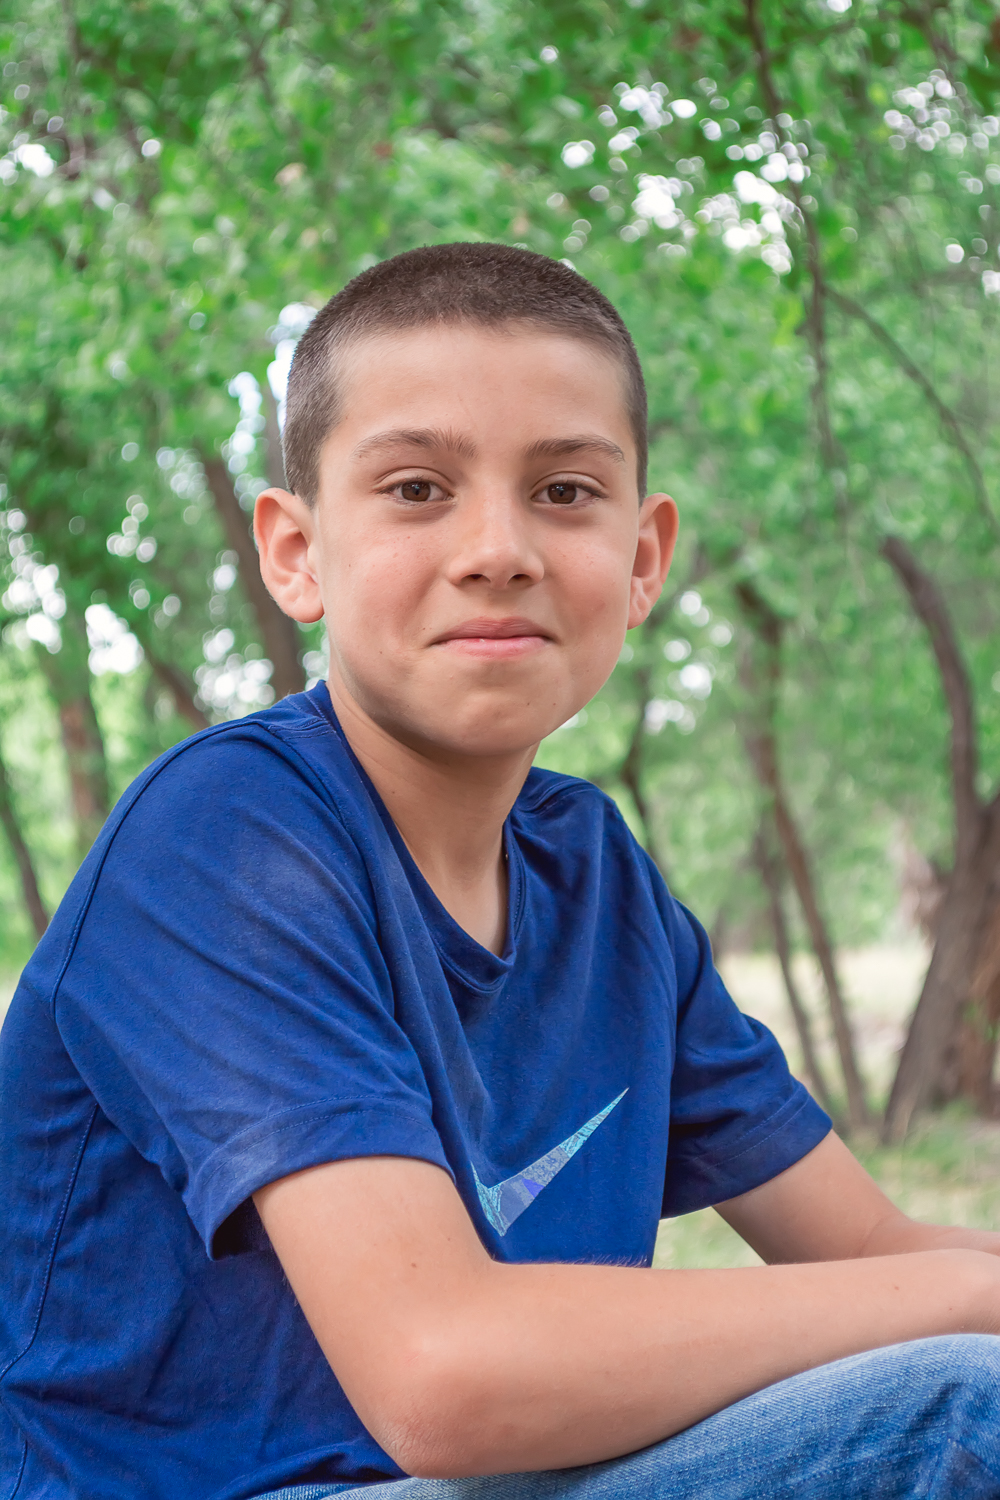 Boy Portrait, outdoor portrait, child portrait, Los Lunas, New Mexico, Los Lunas River Park